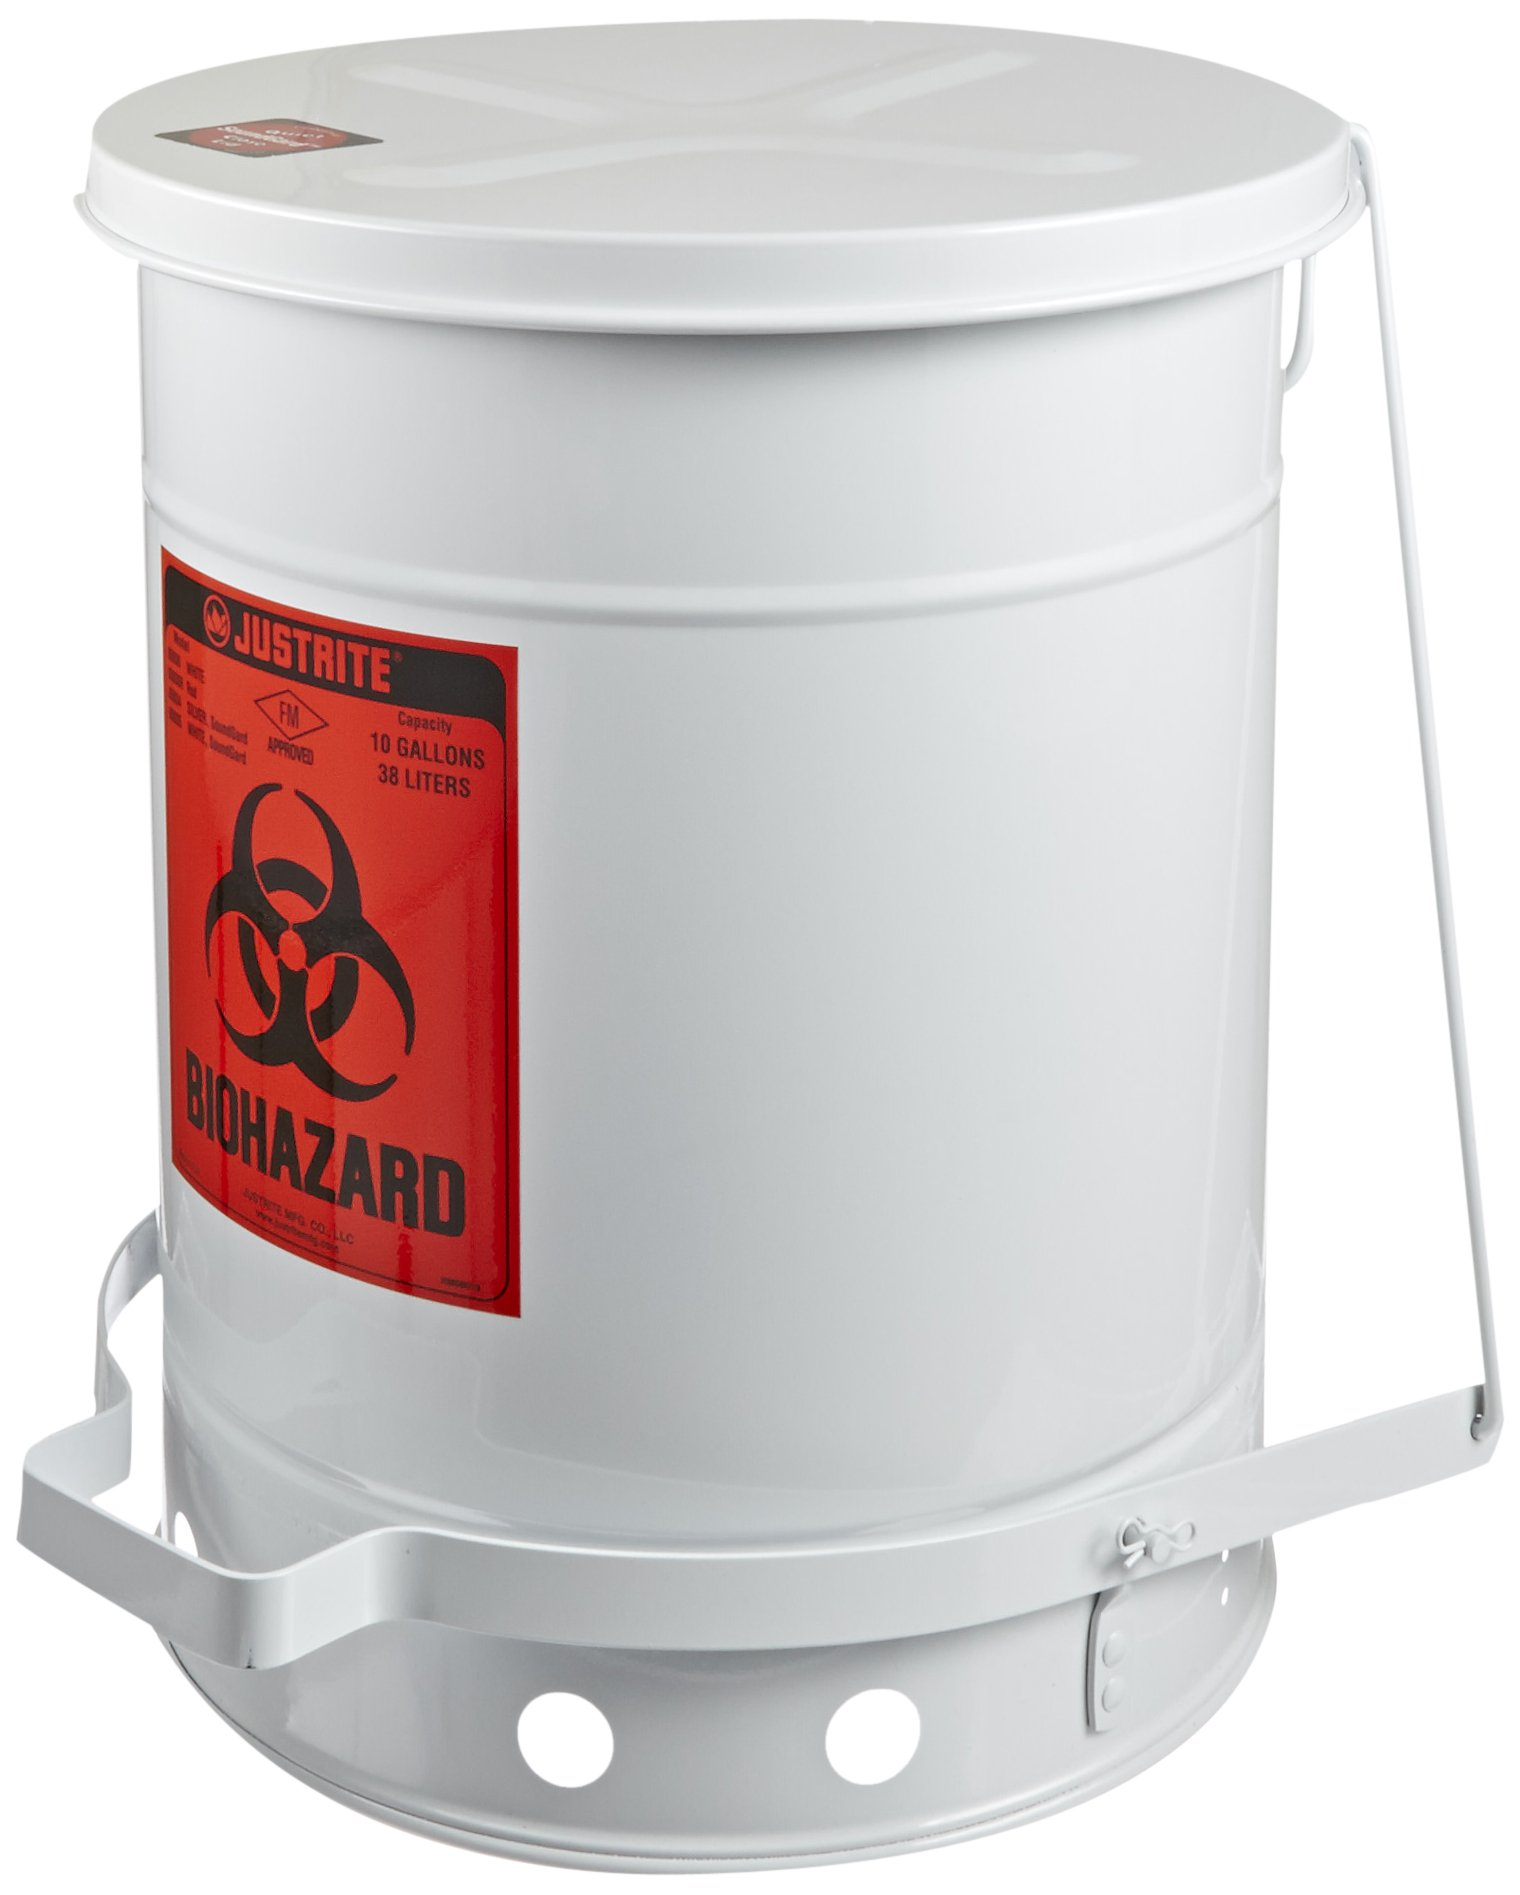 Justrite 05935 SoundGuard Steel Biohazard Waste Container with Foot Operated Cover, 10 Gallon Capacity, 13-15/16'' OD x 18-1/4'' Height, White